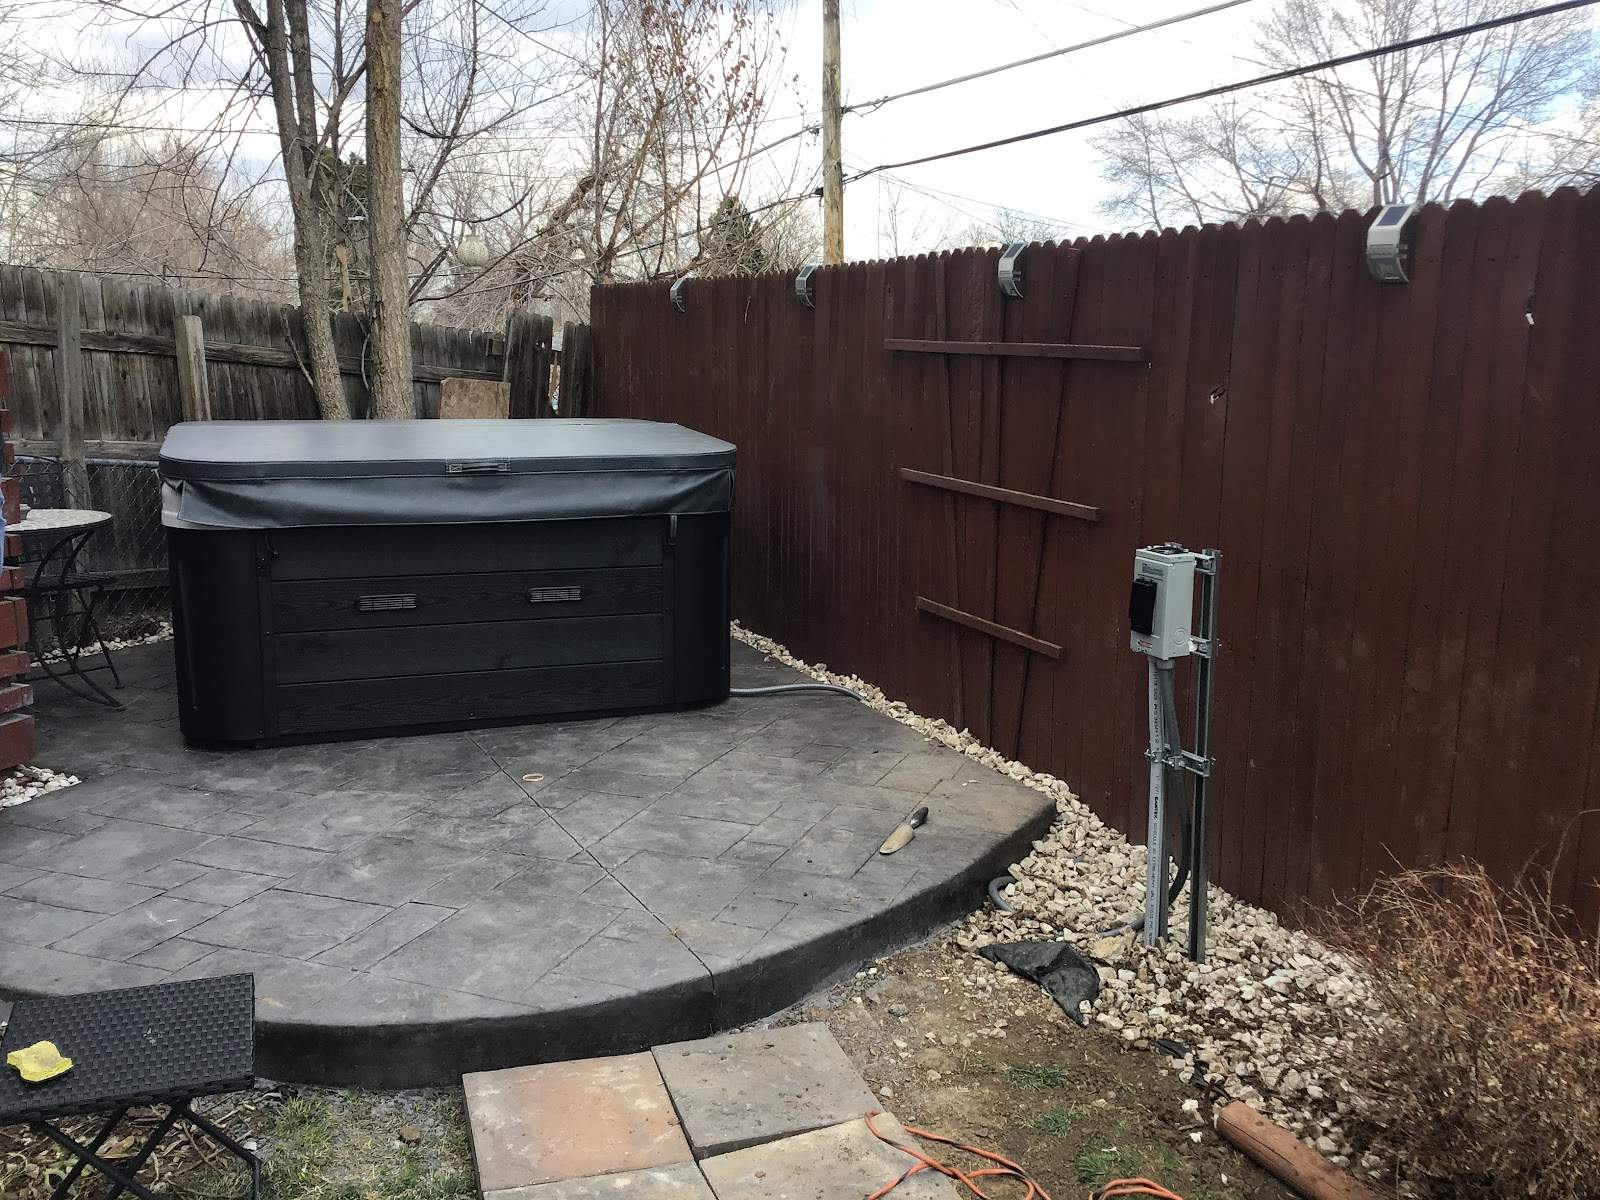 new hot tub with cover, installed on concrete patio in corner of yard where two fences meet, plus freestanding safety disconnect